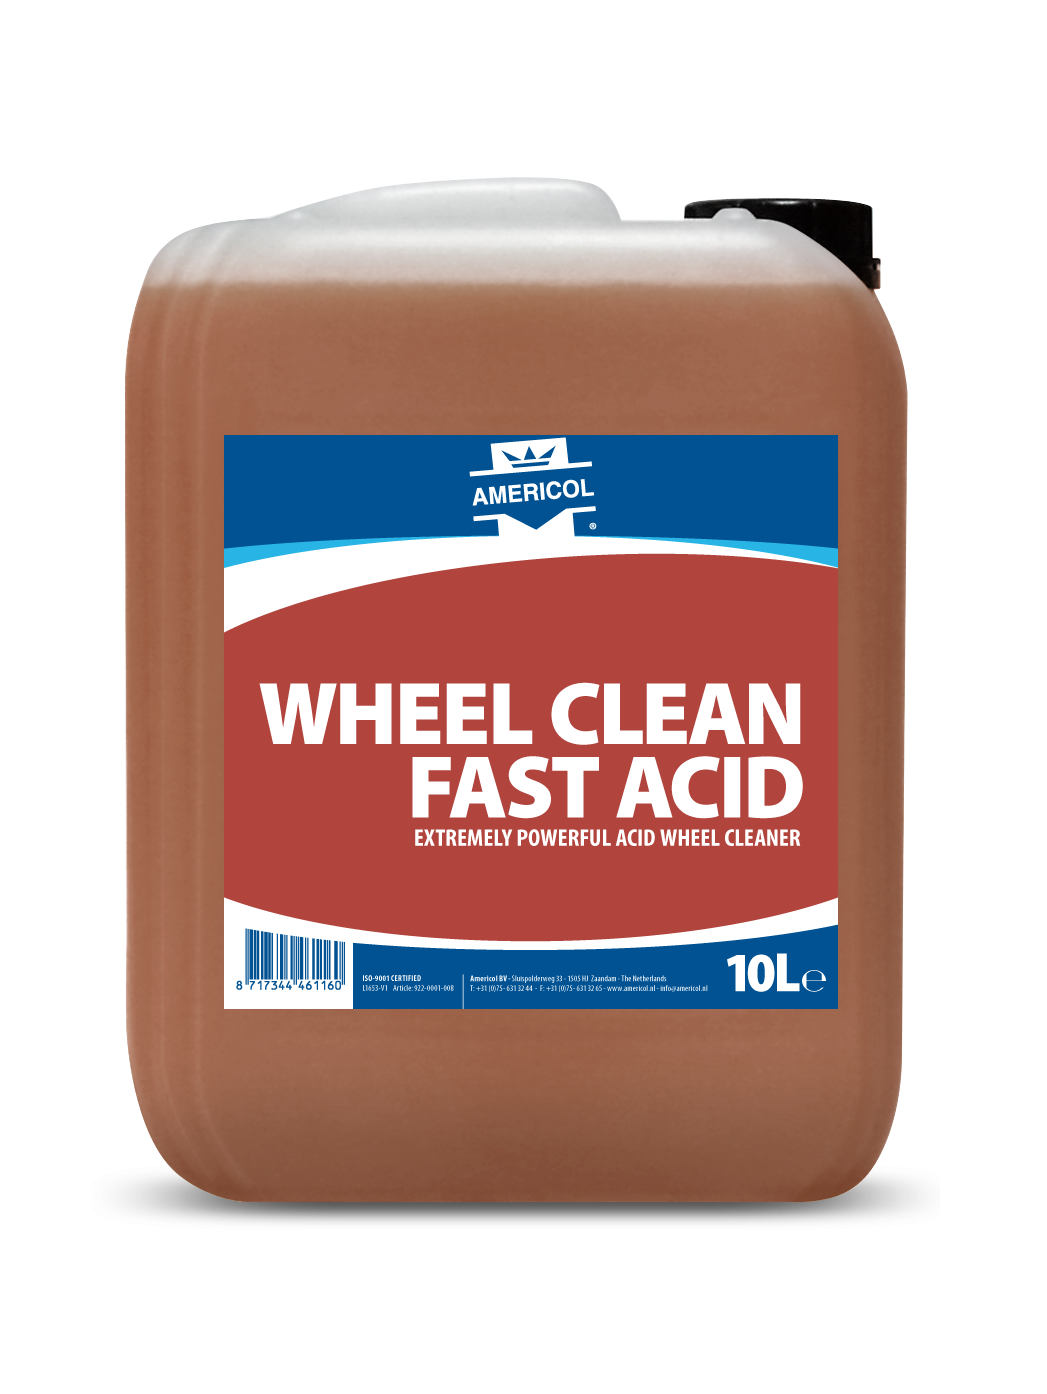 922 WHEEL CLEAN FAST ACID 10L